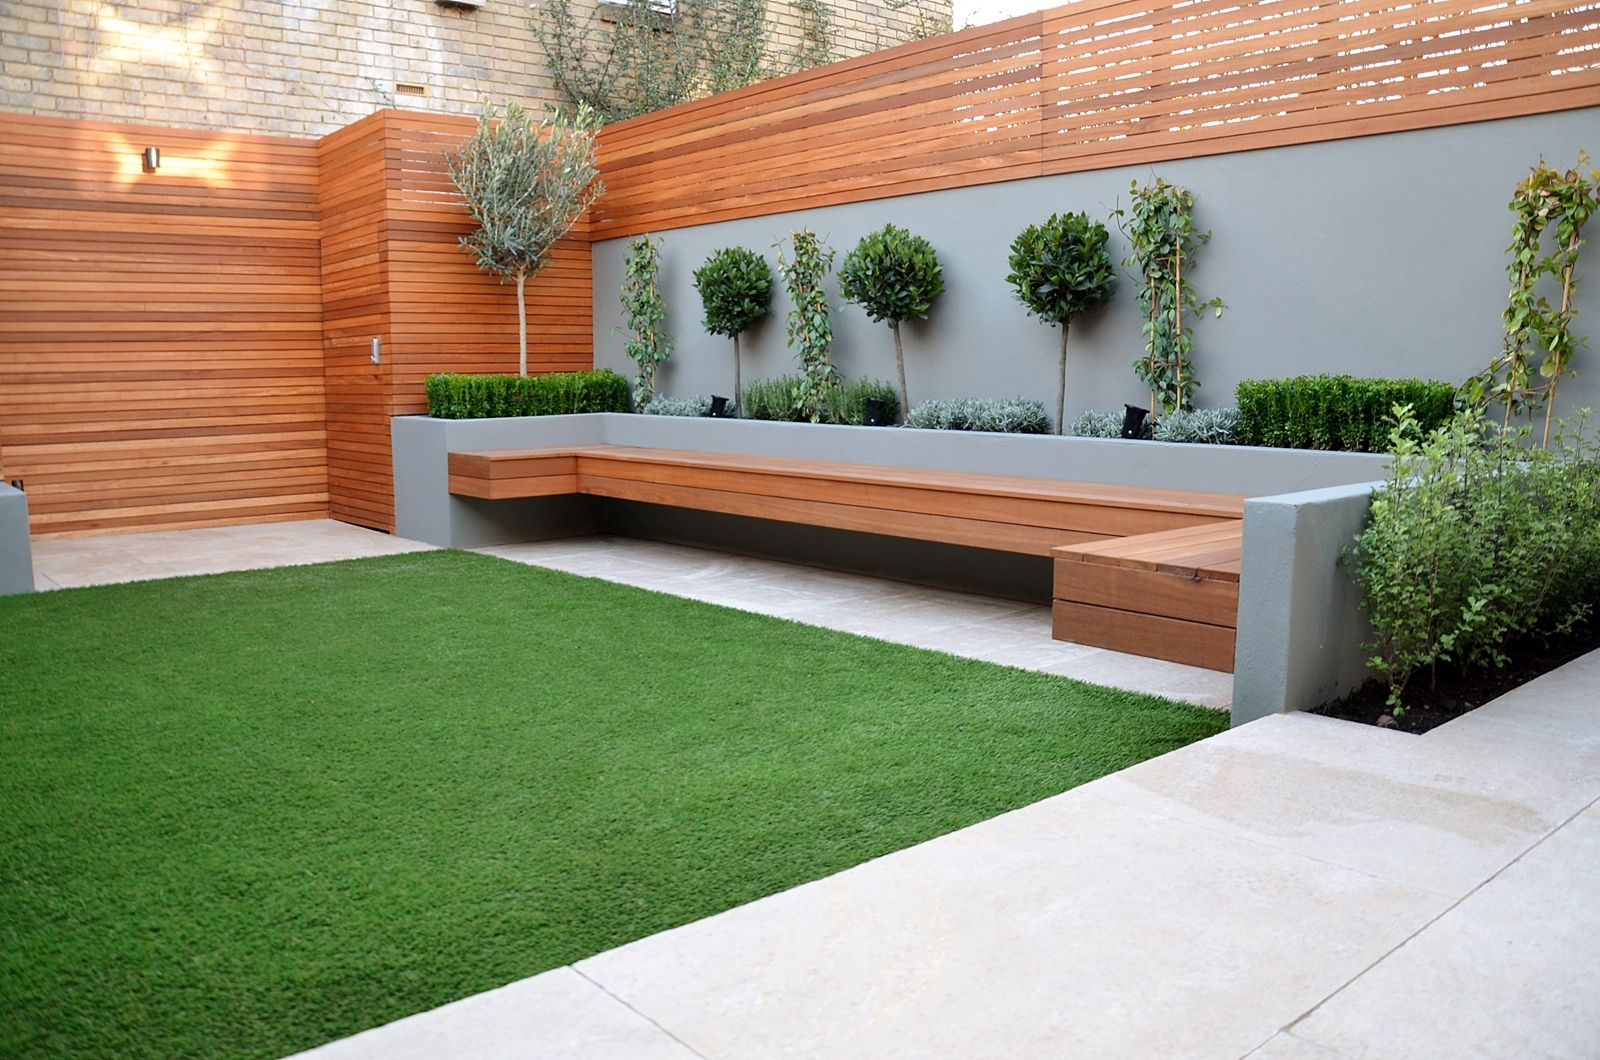 Ideas For Low Maintenance Garden low maintenance garden ideas Modern Low Maintenance Garden Design Clapham London Designed By Anewgarden Home Ideas Pinterest Gardens Design And House